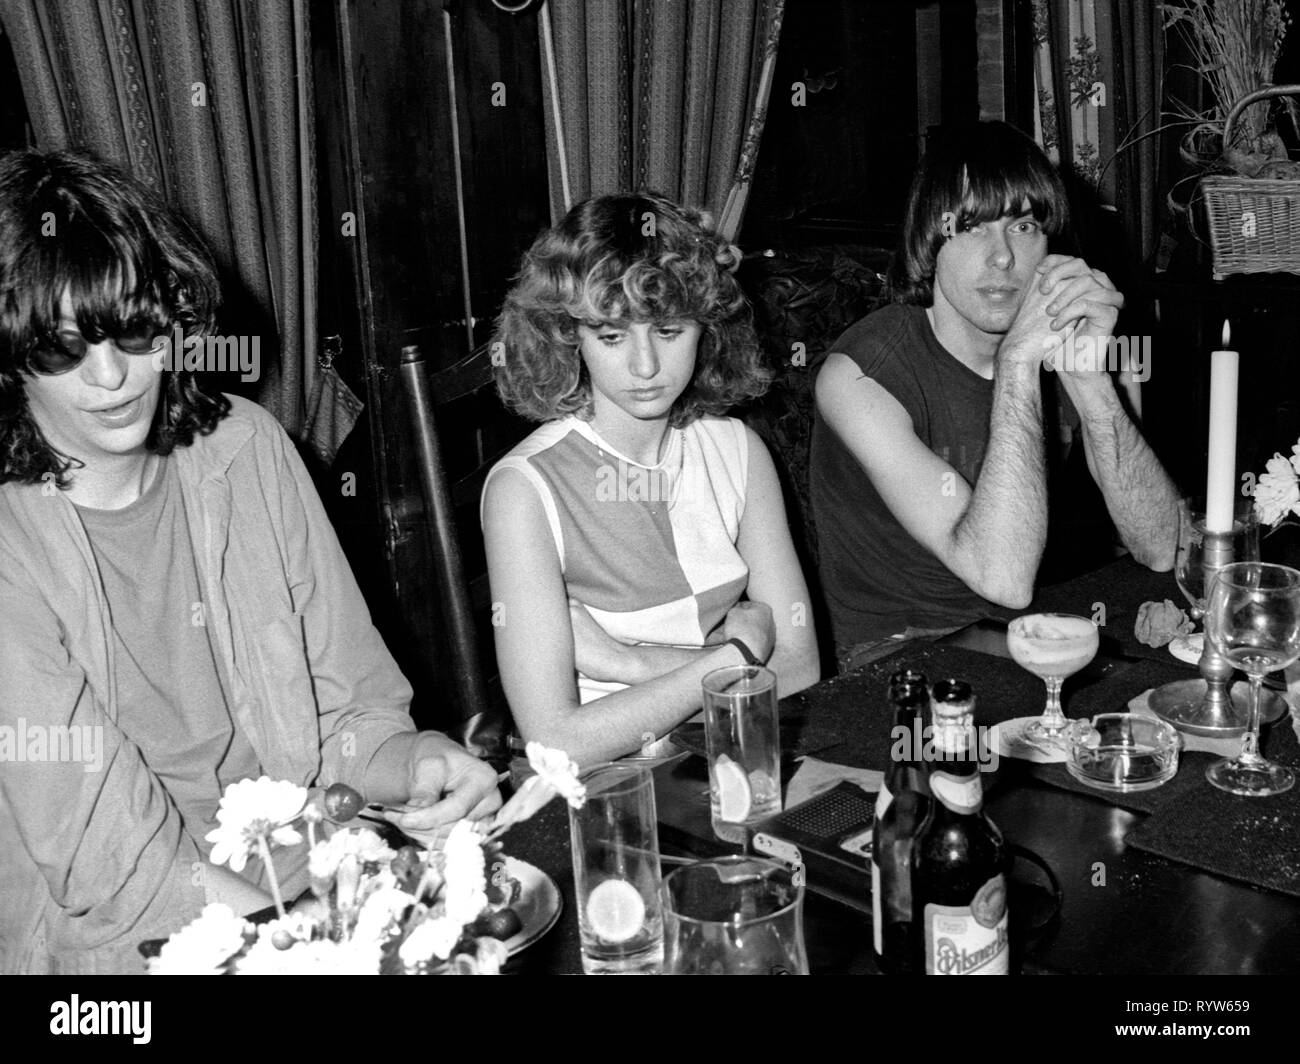 Members of the American rock group The Ramones at a dinner after the shooting of the German TV show Musikladen. On the left, Joey Ramone, and on the right, Johnny Ramone. Bremen, 10 September 1978 - Stock Image